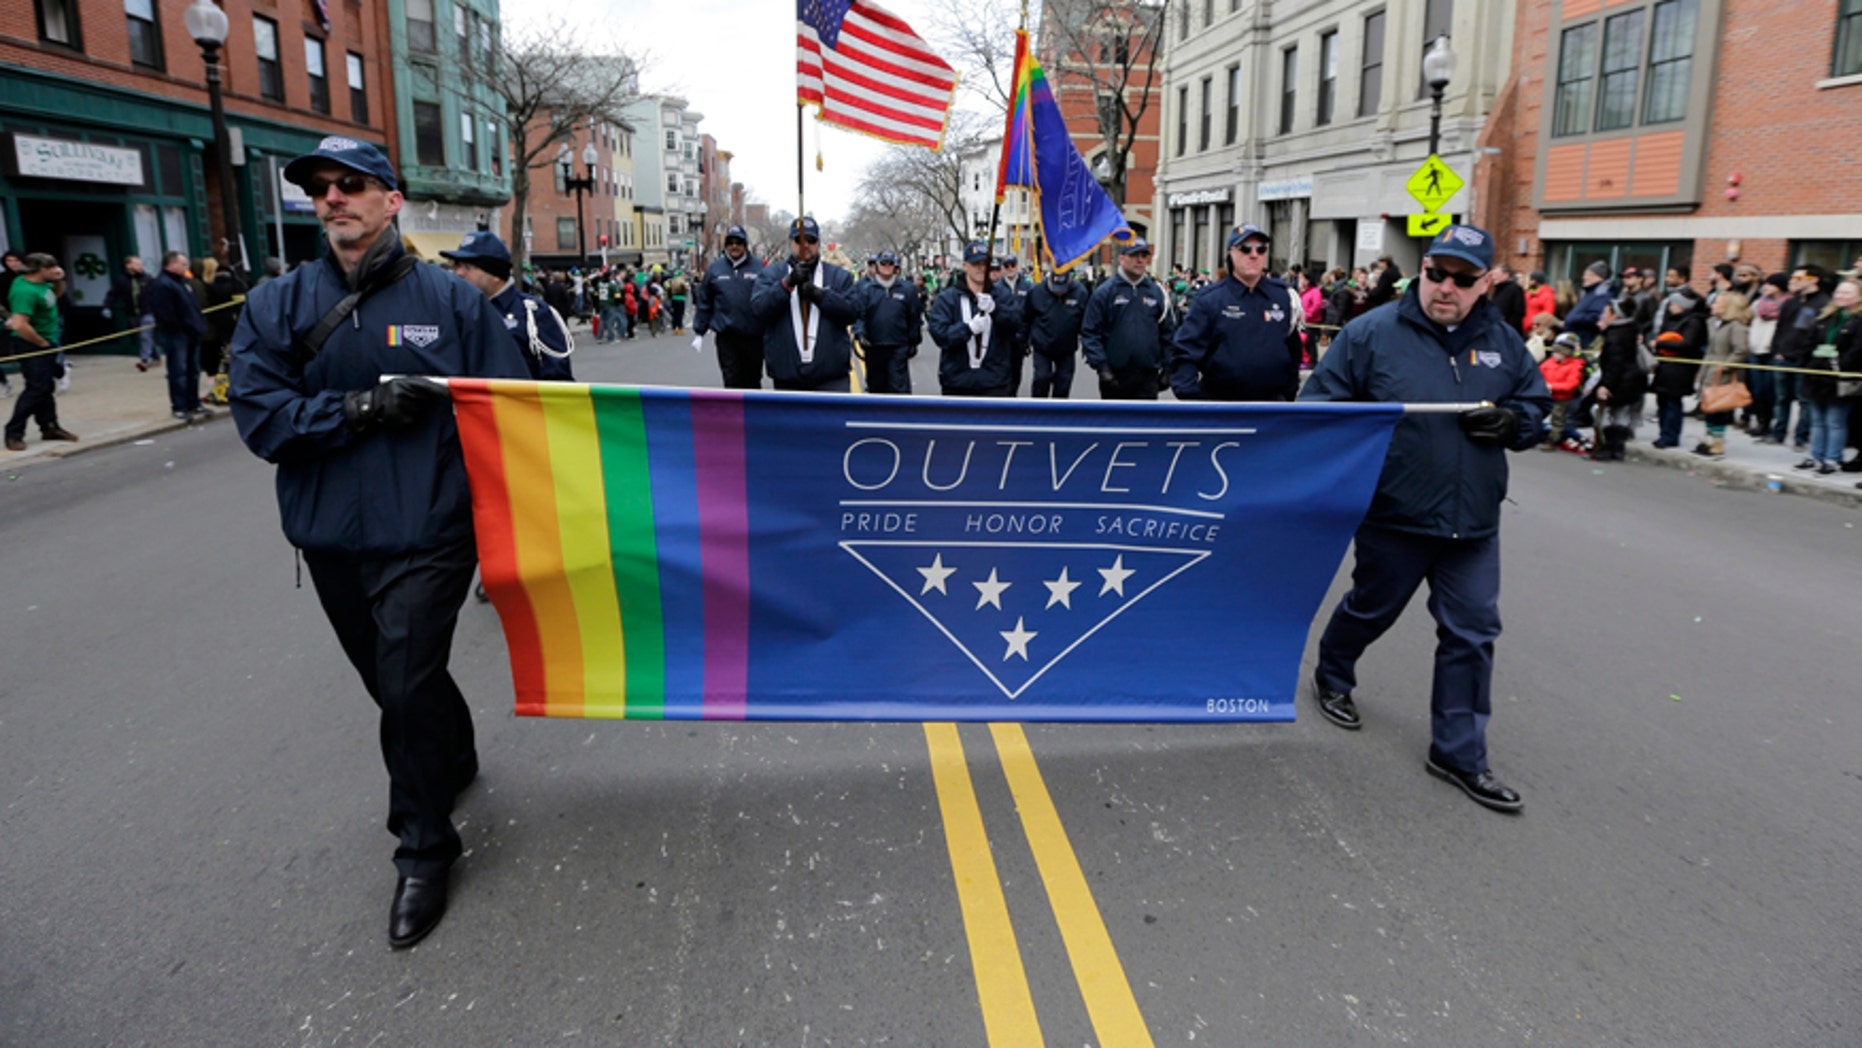 In this March 20, 2016 file photo, members of OutVets, a group of gay military veterans, march in the annual St. Patrick's Day Parade in Boston's South Boston neighborhood. The group said Wednesday, March 8, 2017, it was denied permission to march in the 2017 Boston St. Patrick's Day parade just two years after organizers made the ground-breaking decision to allow gay groups to participate for the first time.